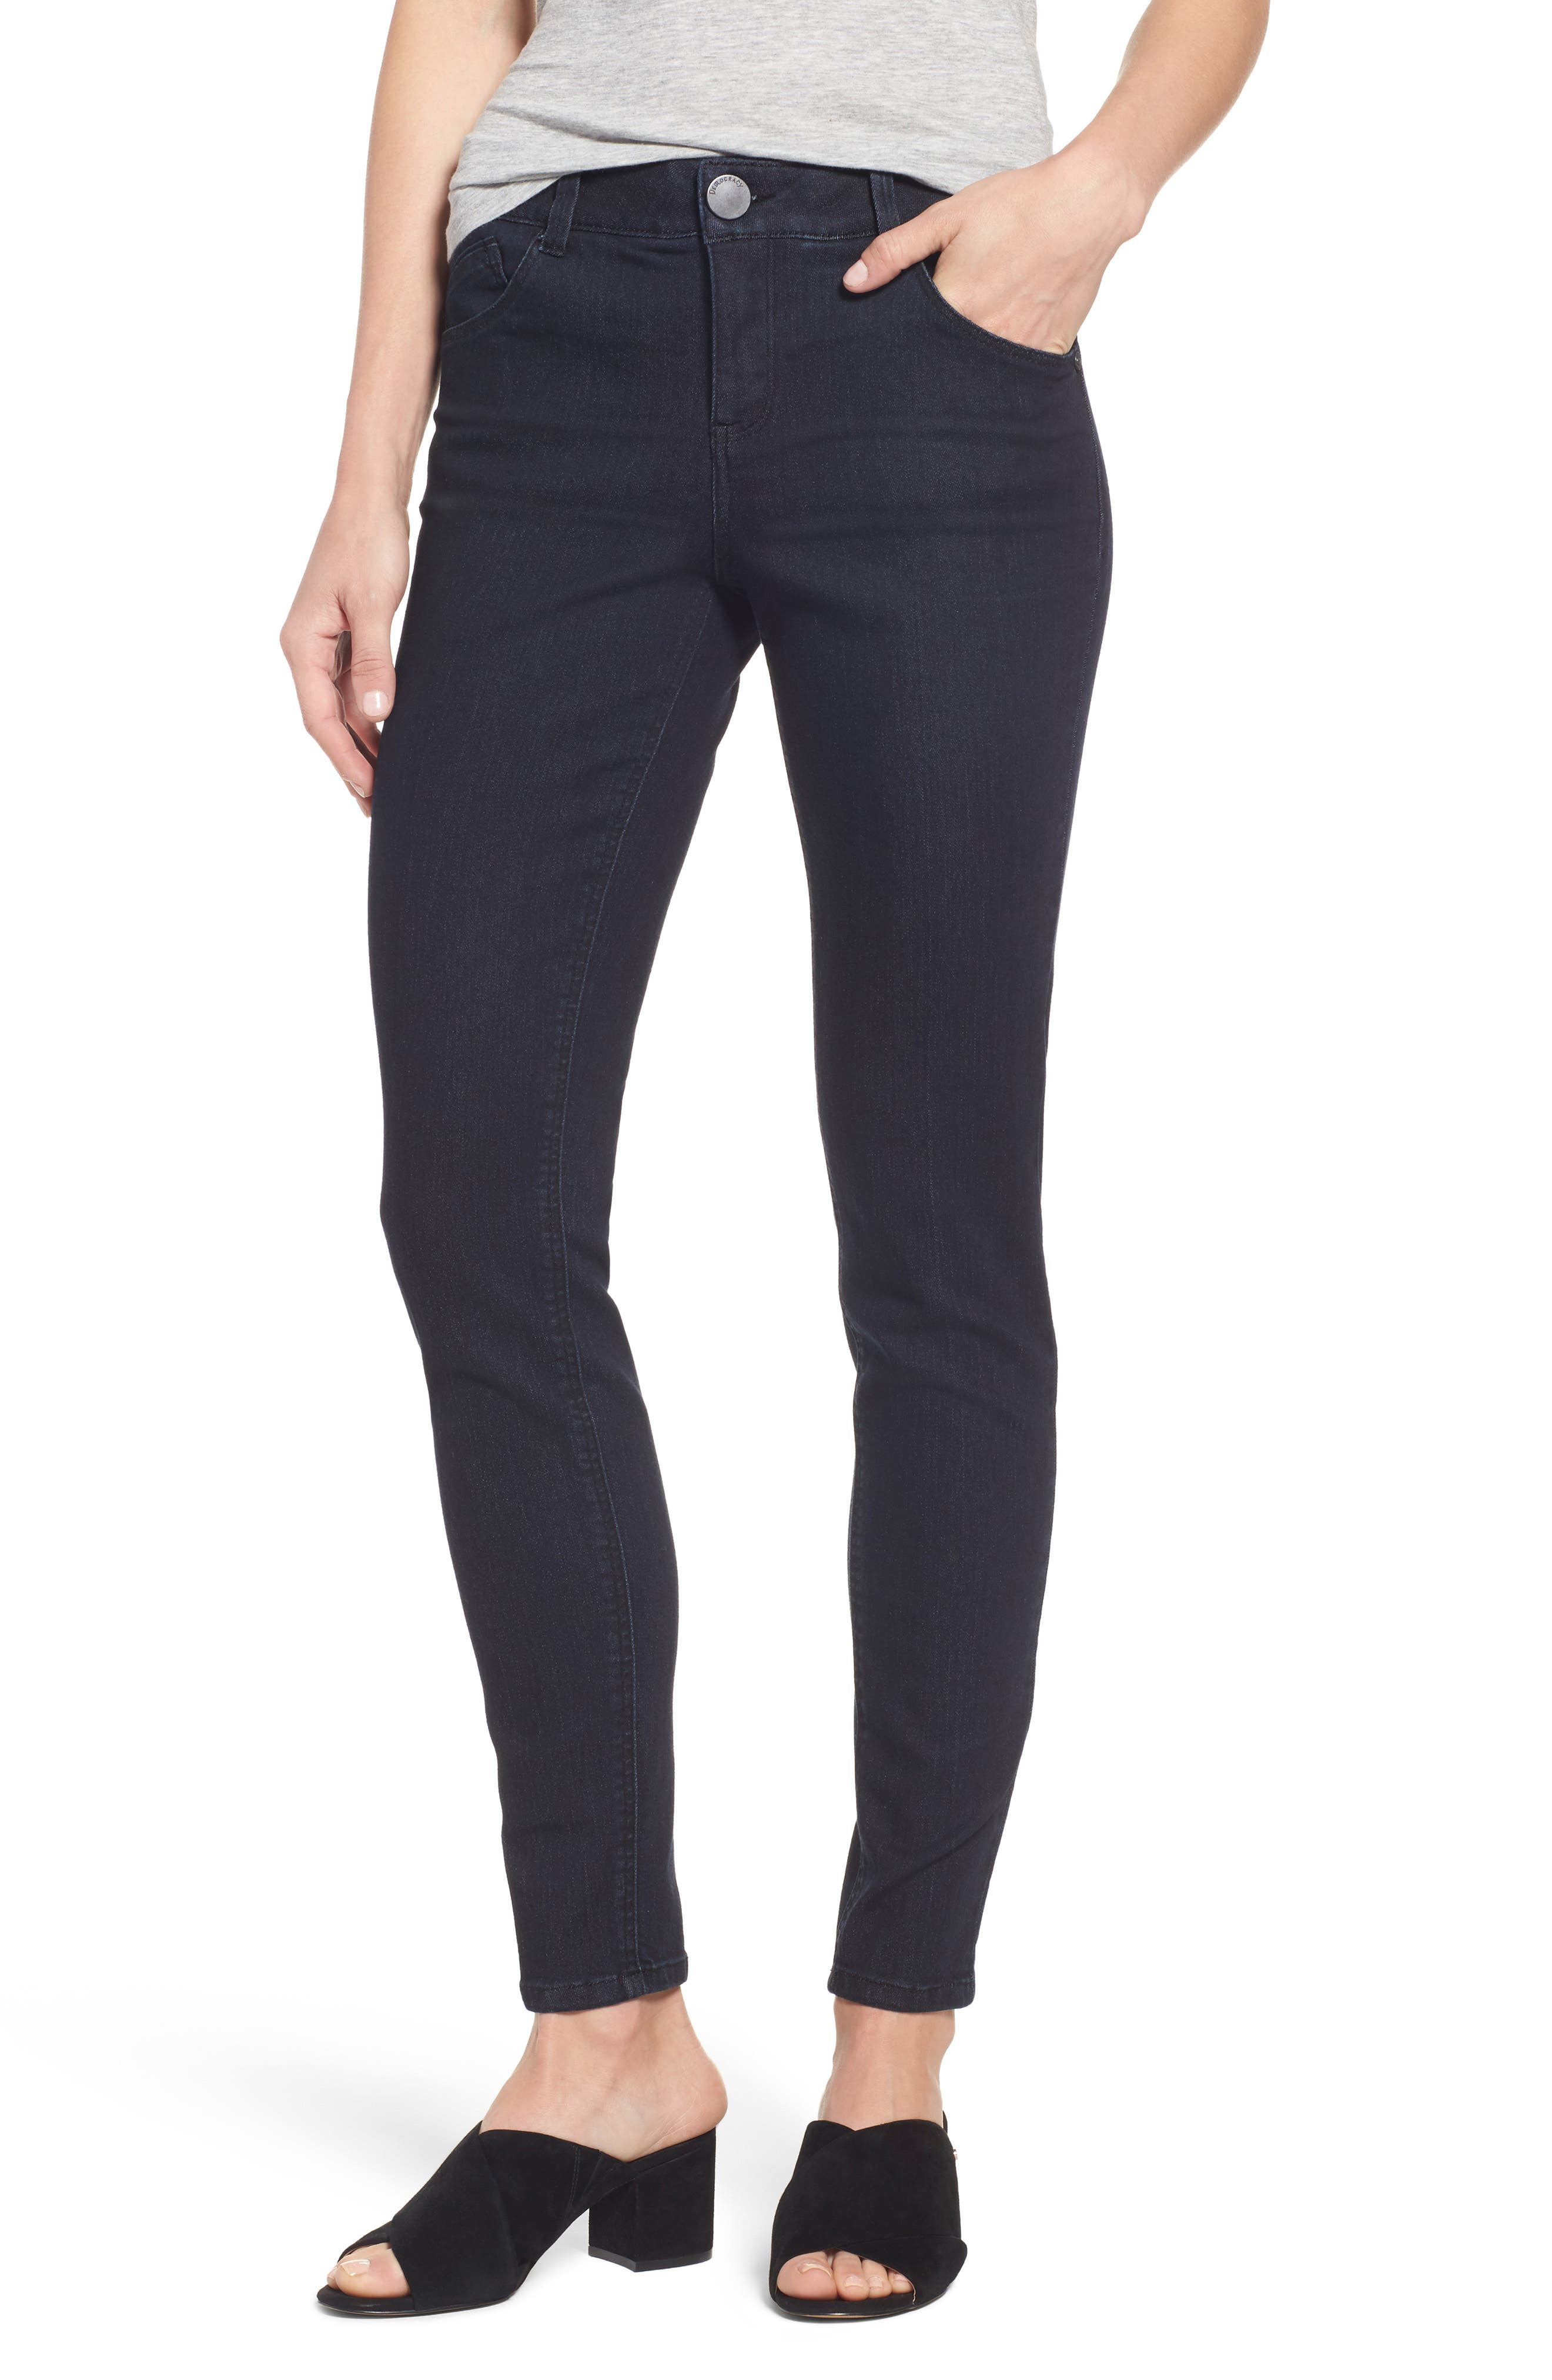 Alternate Image 1 Selected - Wit & Wisdom Ab-solution Stretch Skinny Jeans (Regular & Petite)(Nordstrom Exclusive)